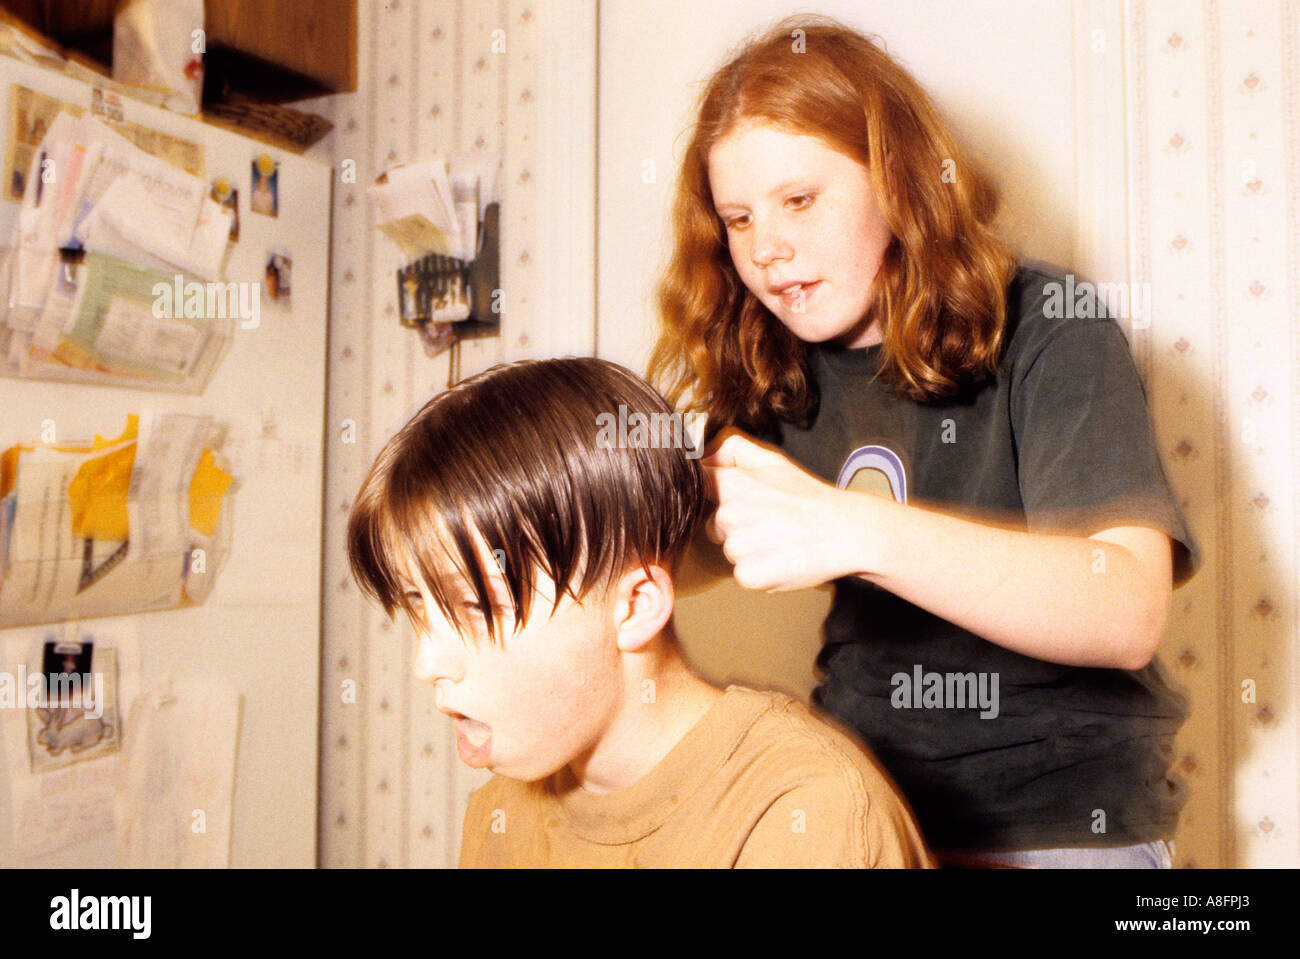 Sister Cutting Brother S Hair In Kitchen Stock Photo Alamy